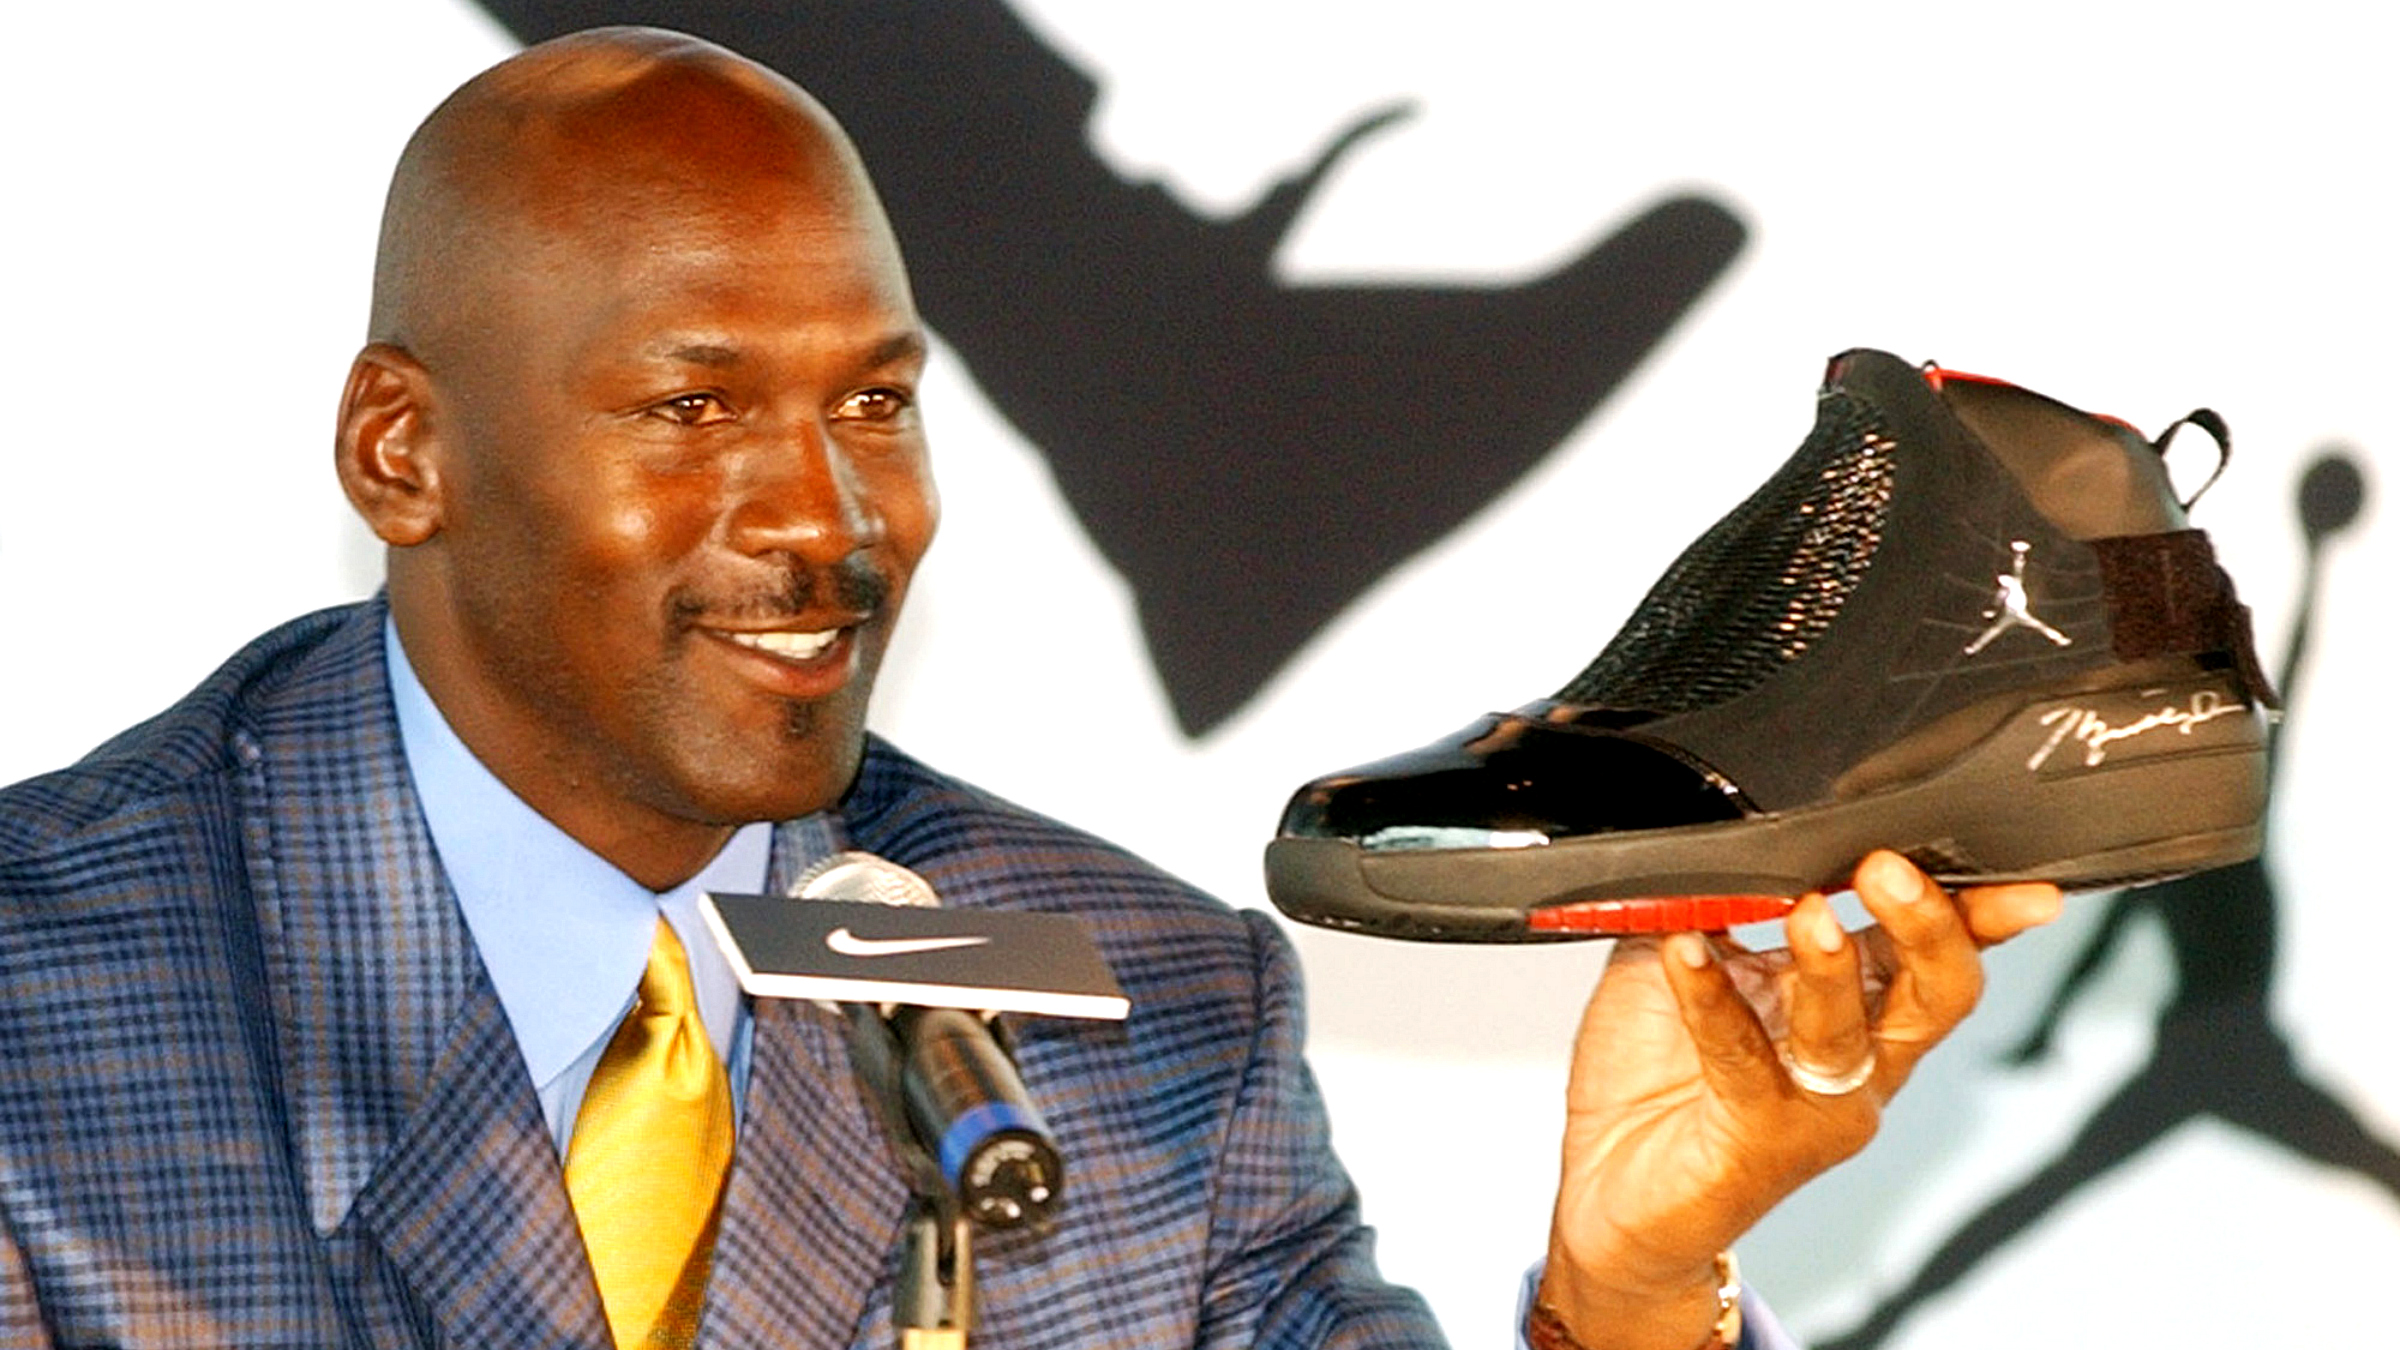 Nike Air Jordans Account For One In Every Three Dollars Spent On Sneakers On Ebay